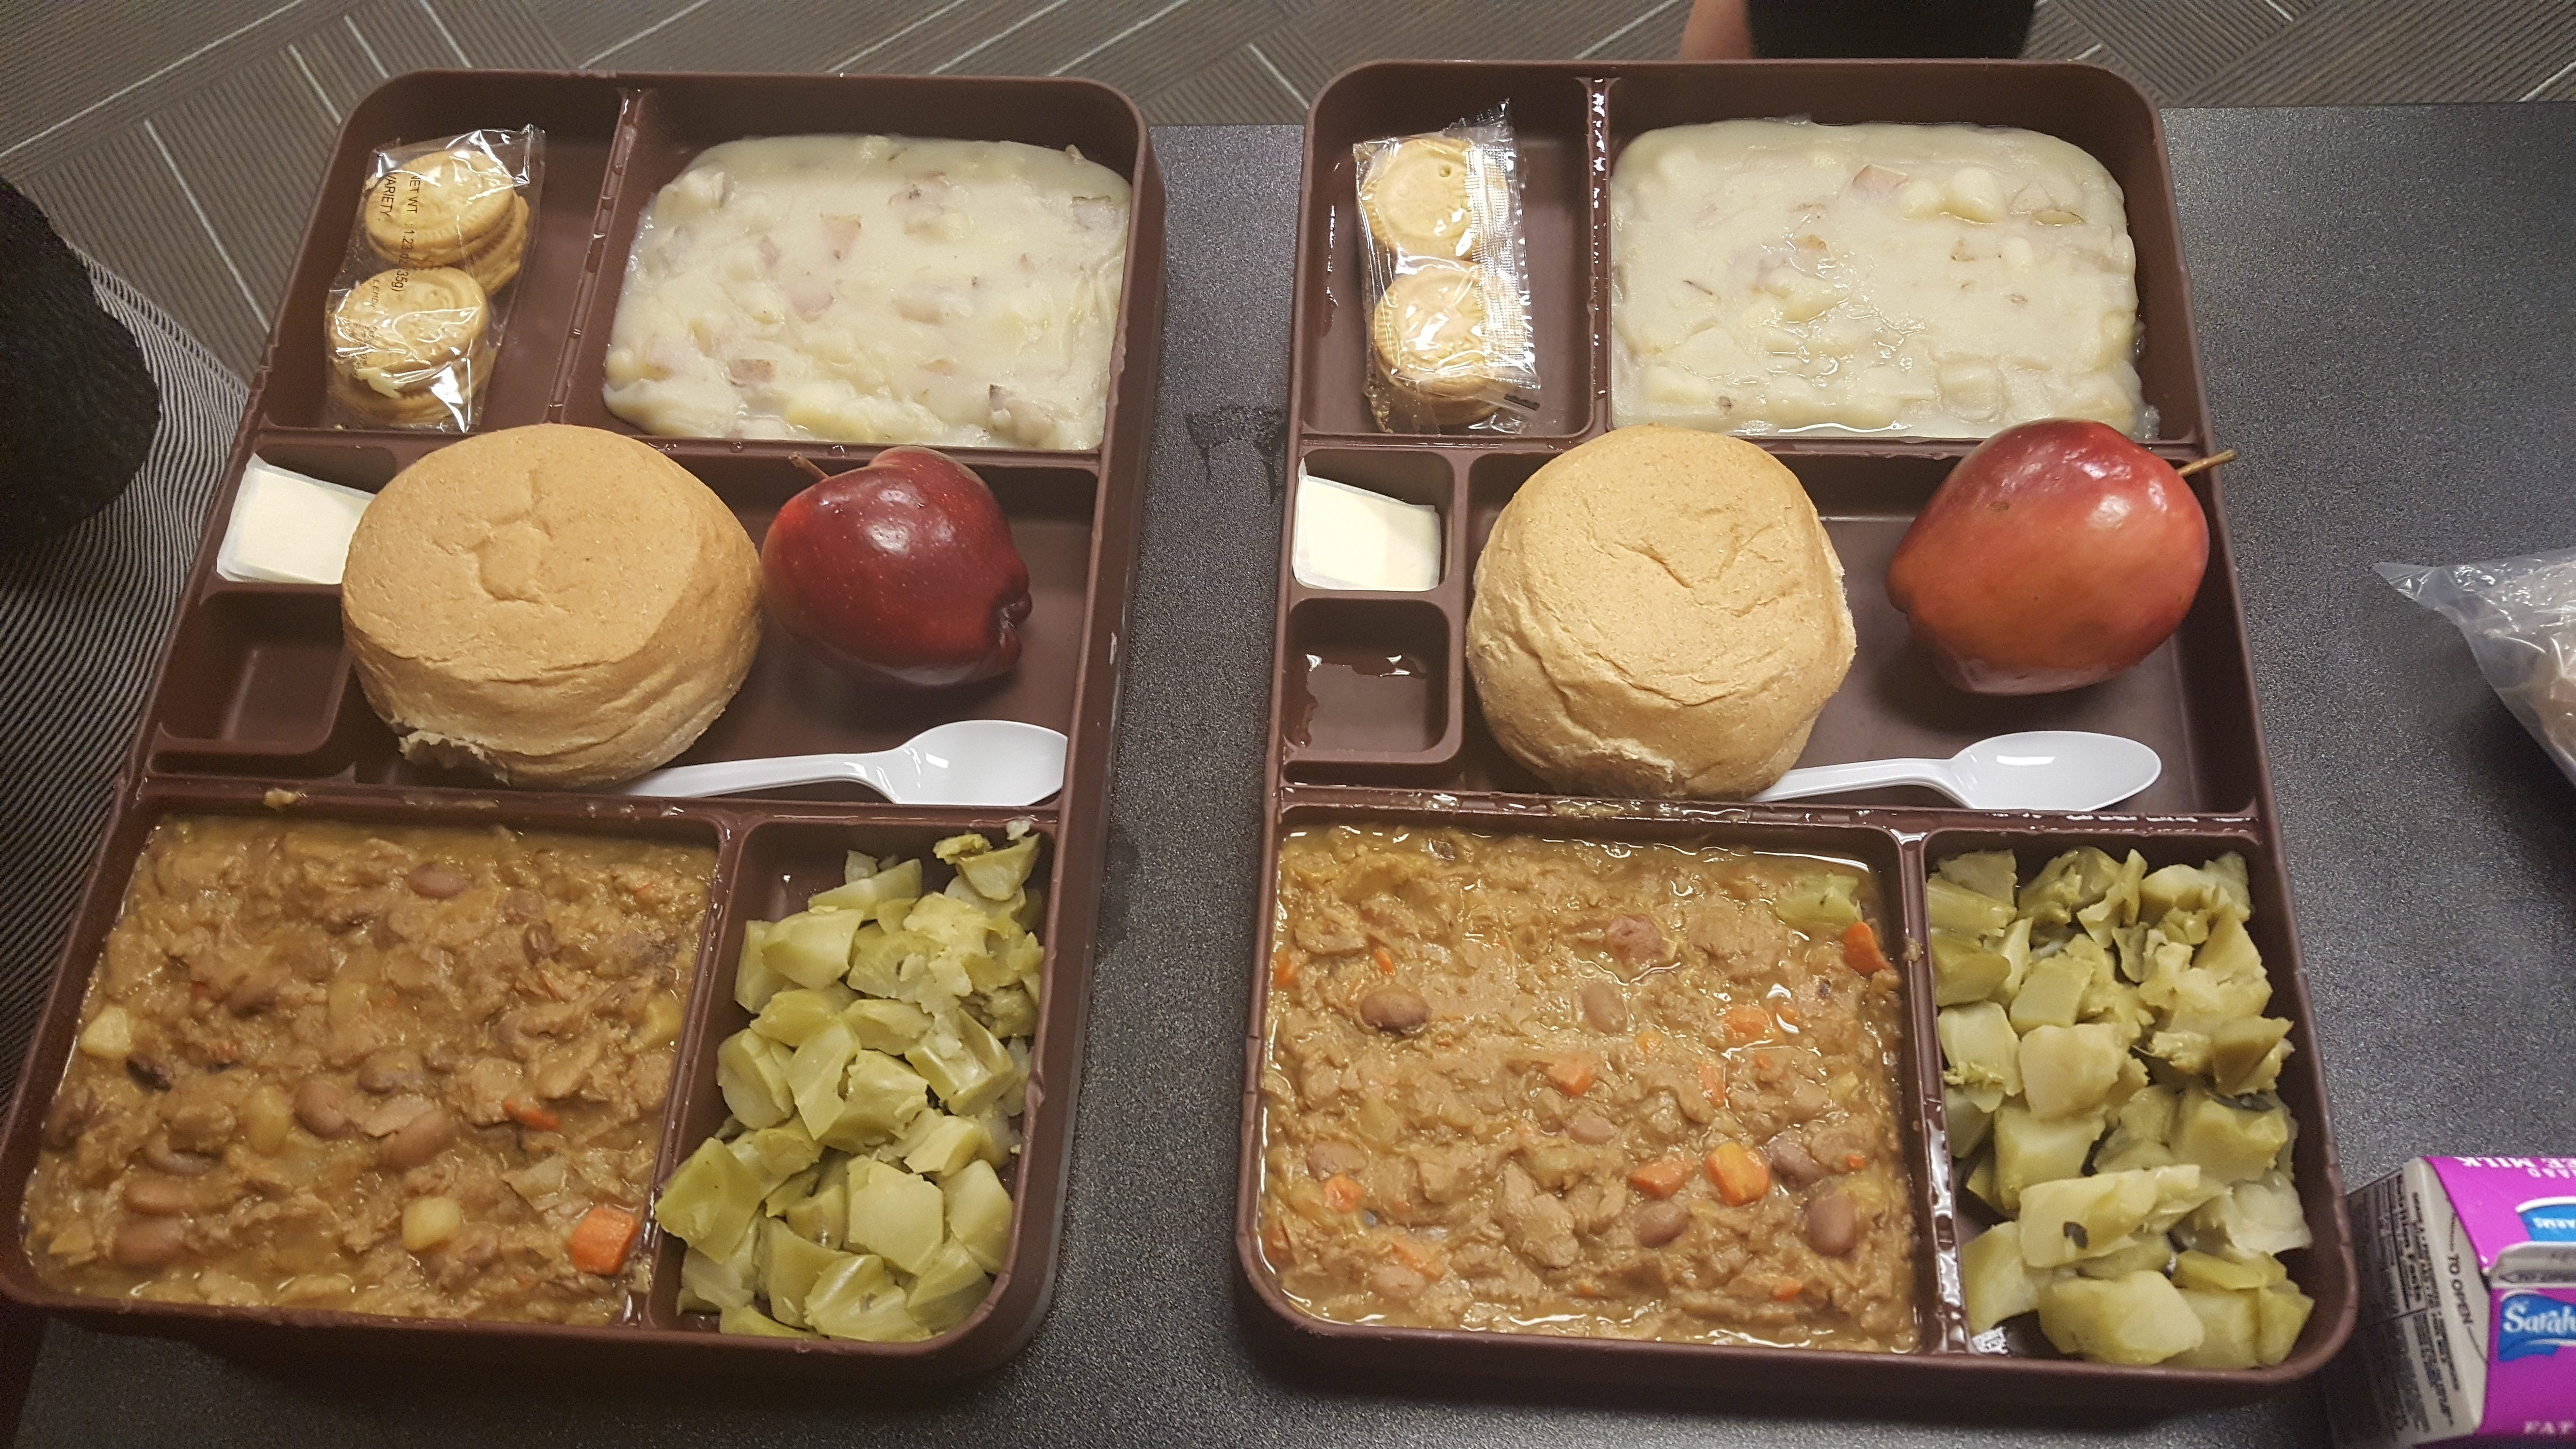 & Penzone: Maricopa County jail meals sufficient; media offered a taste